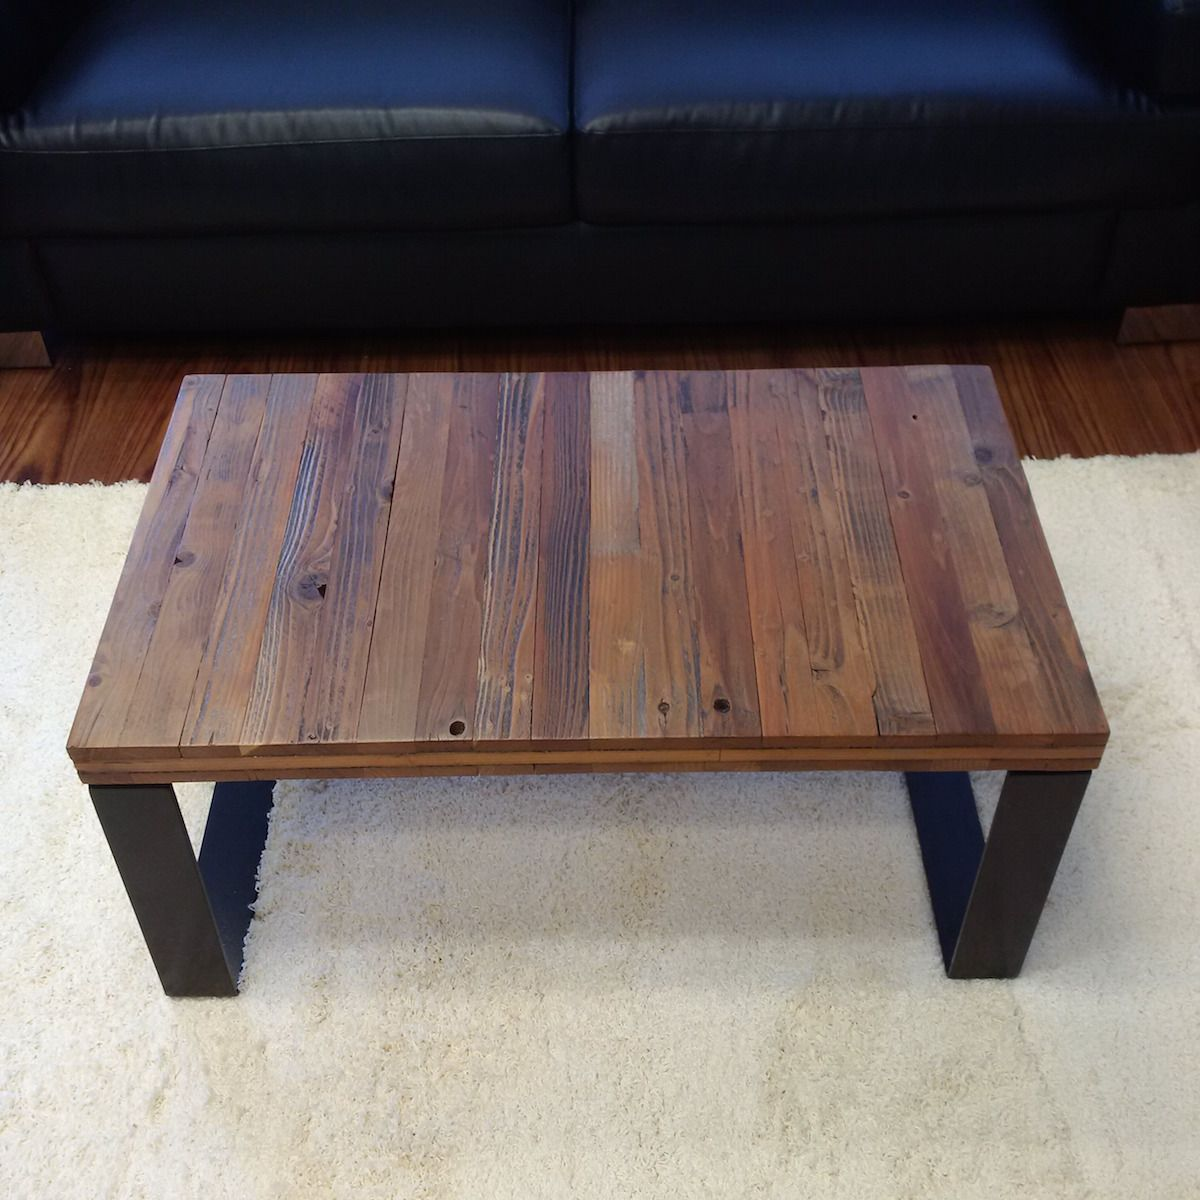 Fantastic Buy A Custom Reclaimed Barn Wood Coffee Table Made To Order Home Interior And Landscaping Mentranervesignezvosmurscom